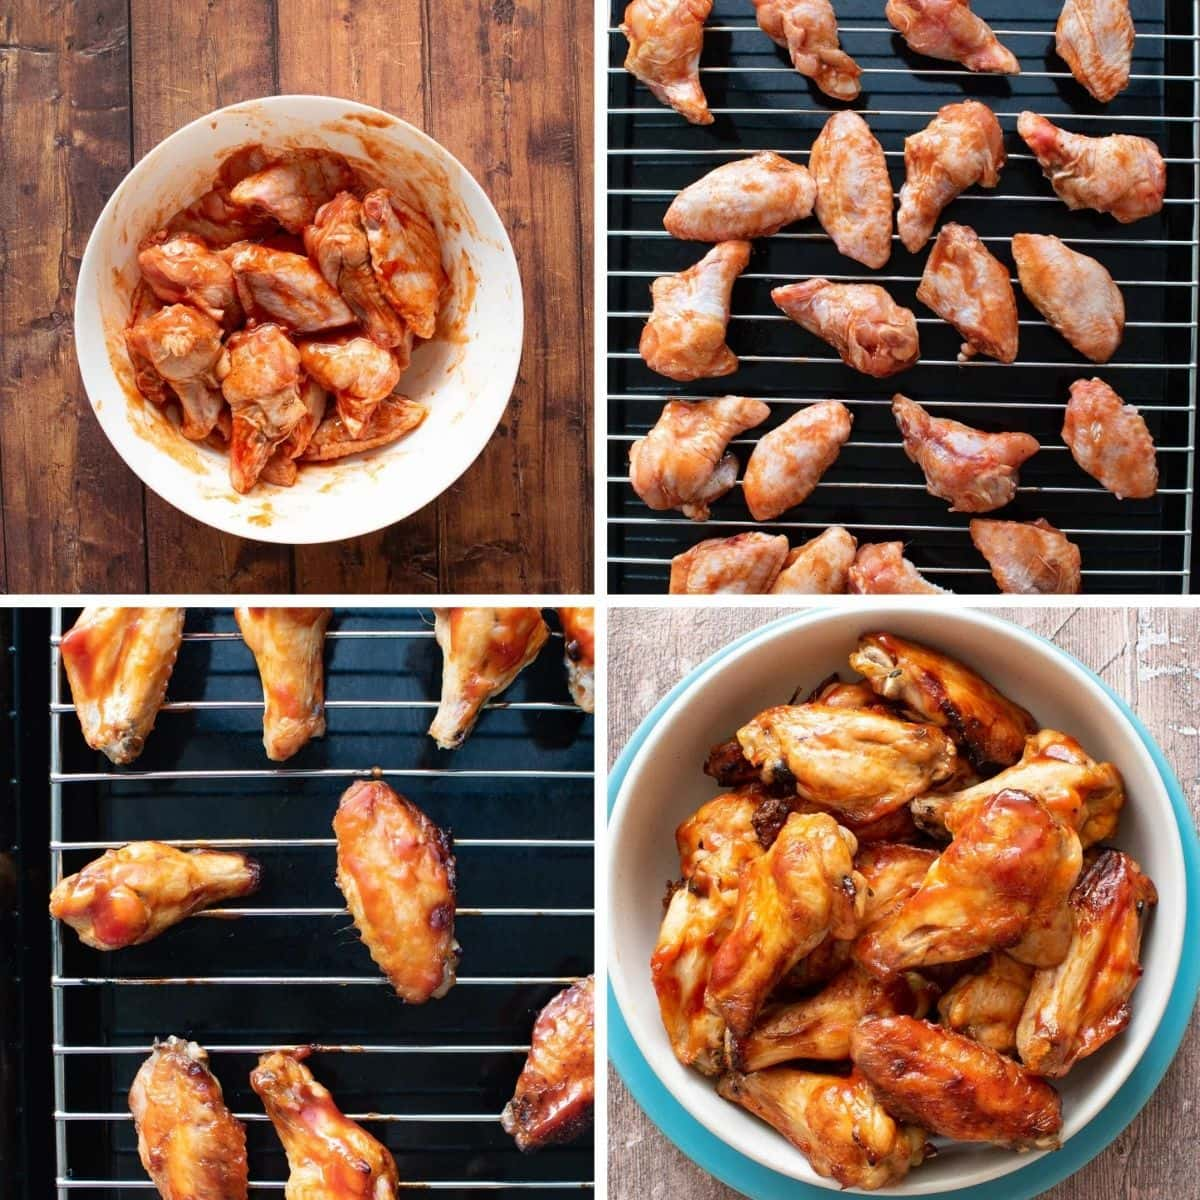 Step by step images showing how to make baked wings with sriracha.